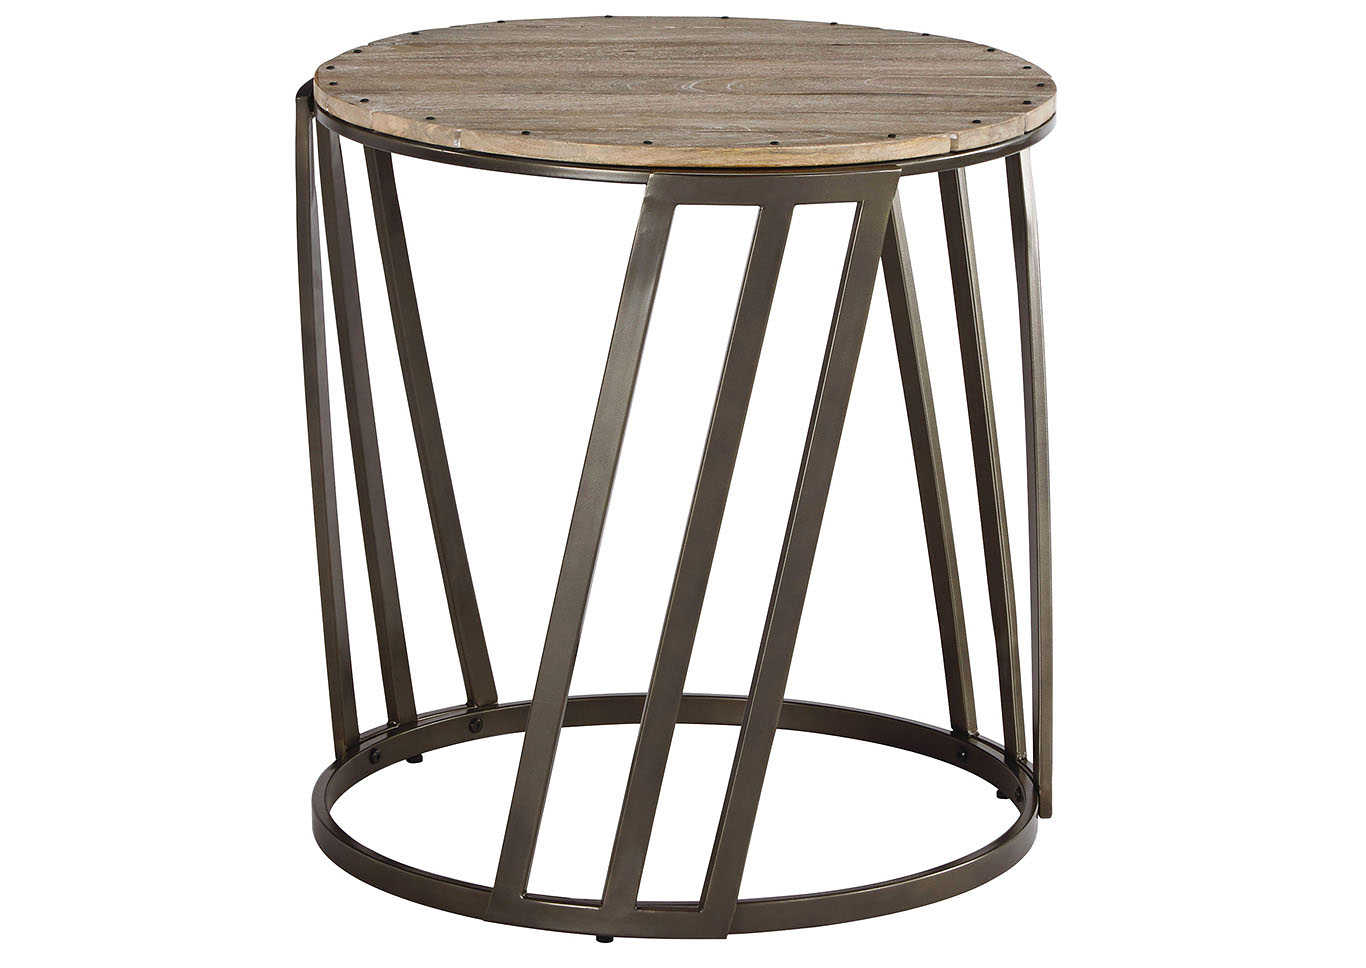 Fathenzen Two Tone Round End Table,48 Hour Quick Ship